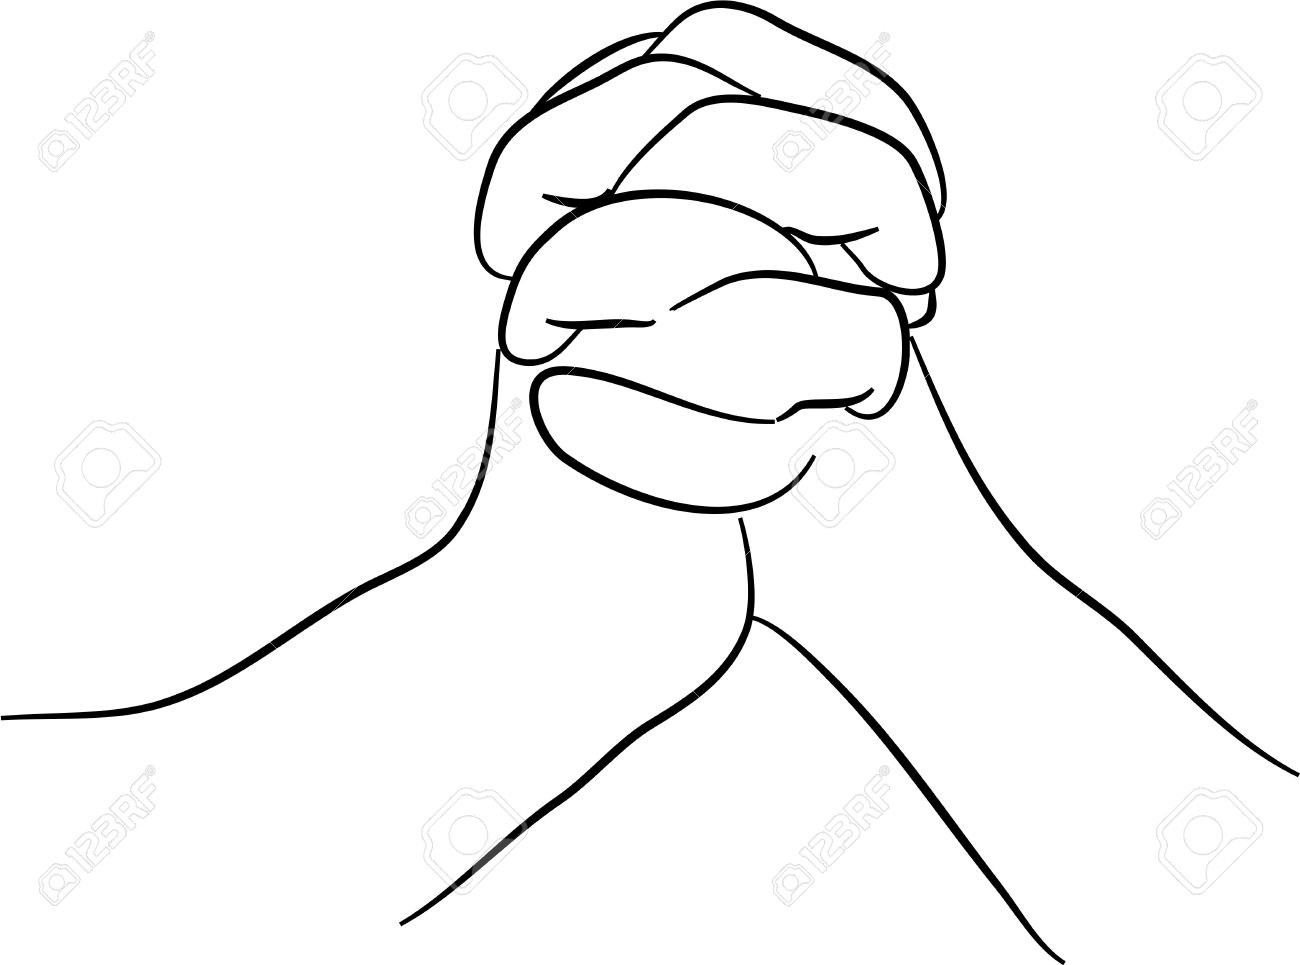 1300x965 A Simple Line Drawing Of Two Hands Clasped Together Stock Photo